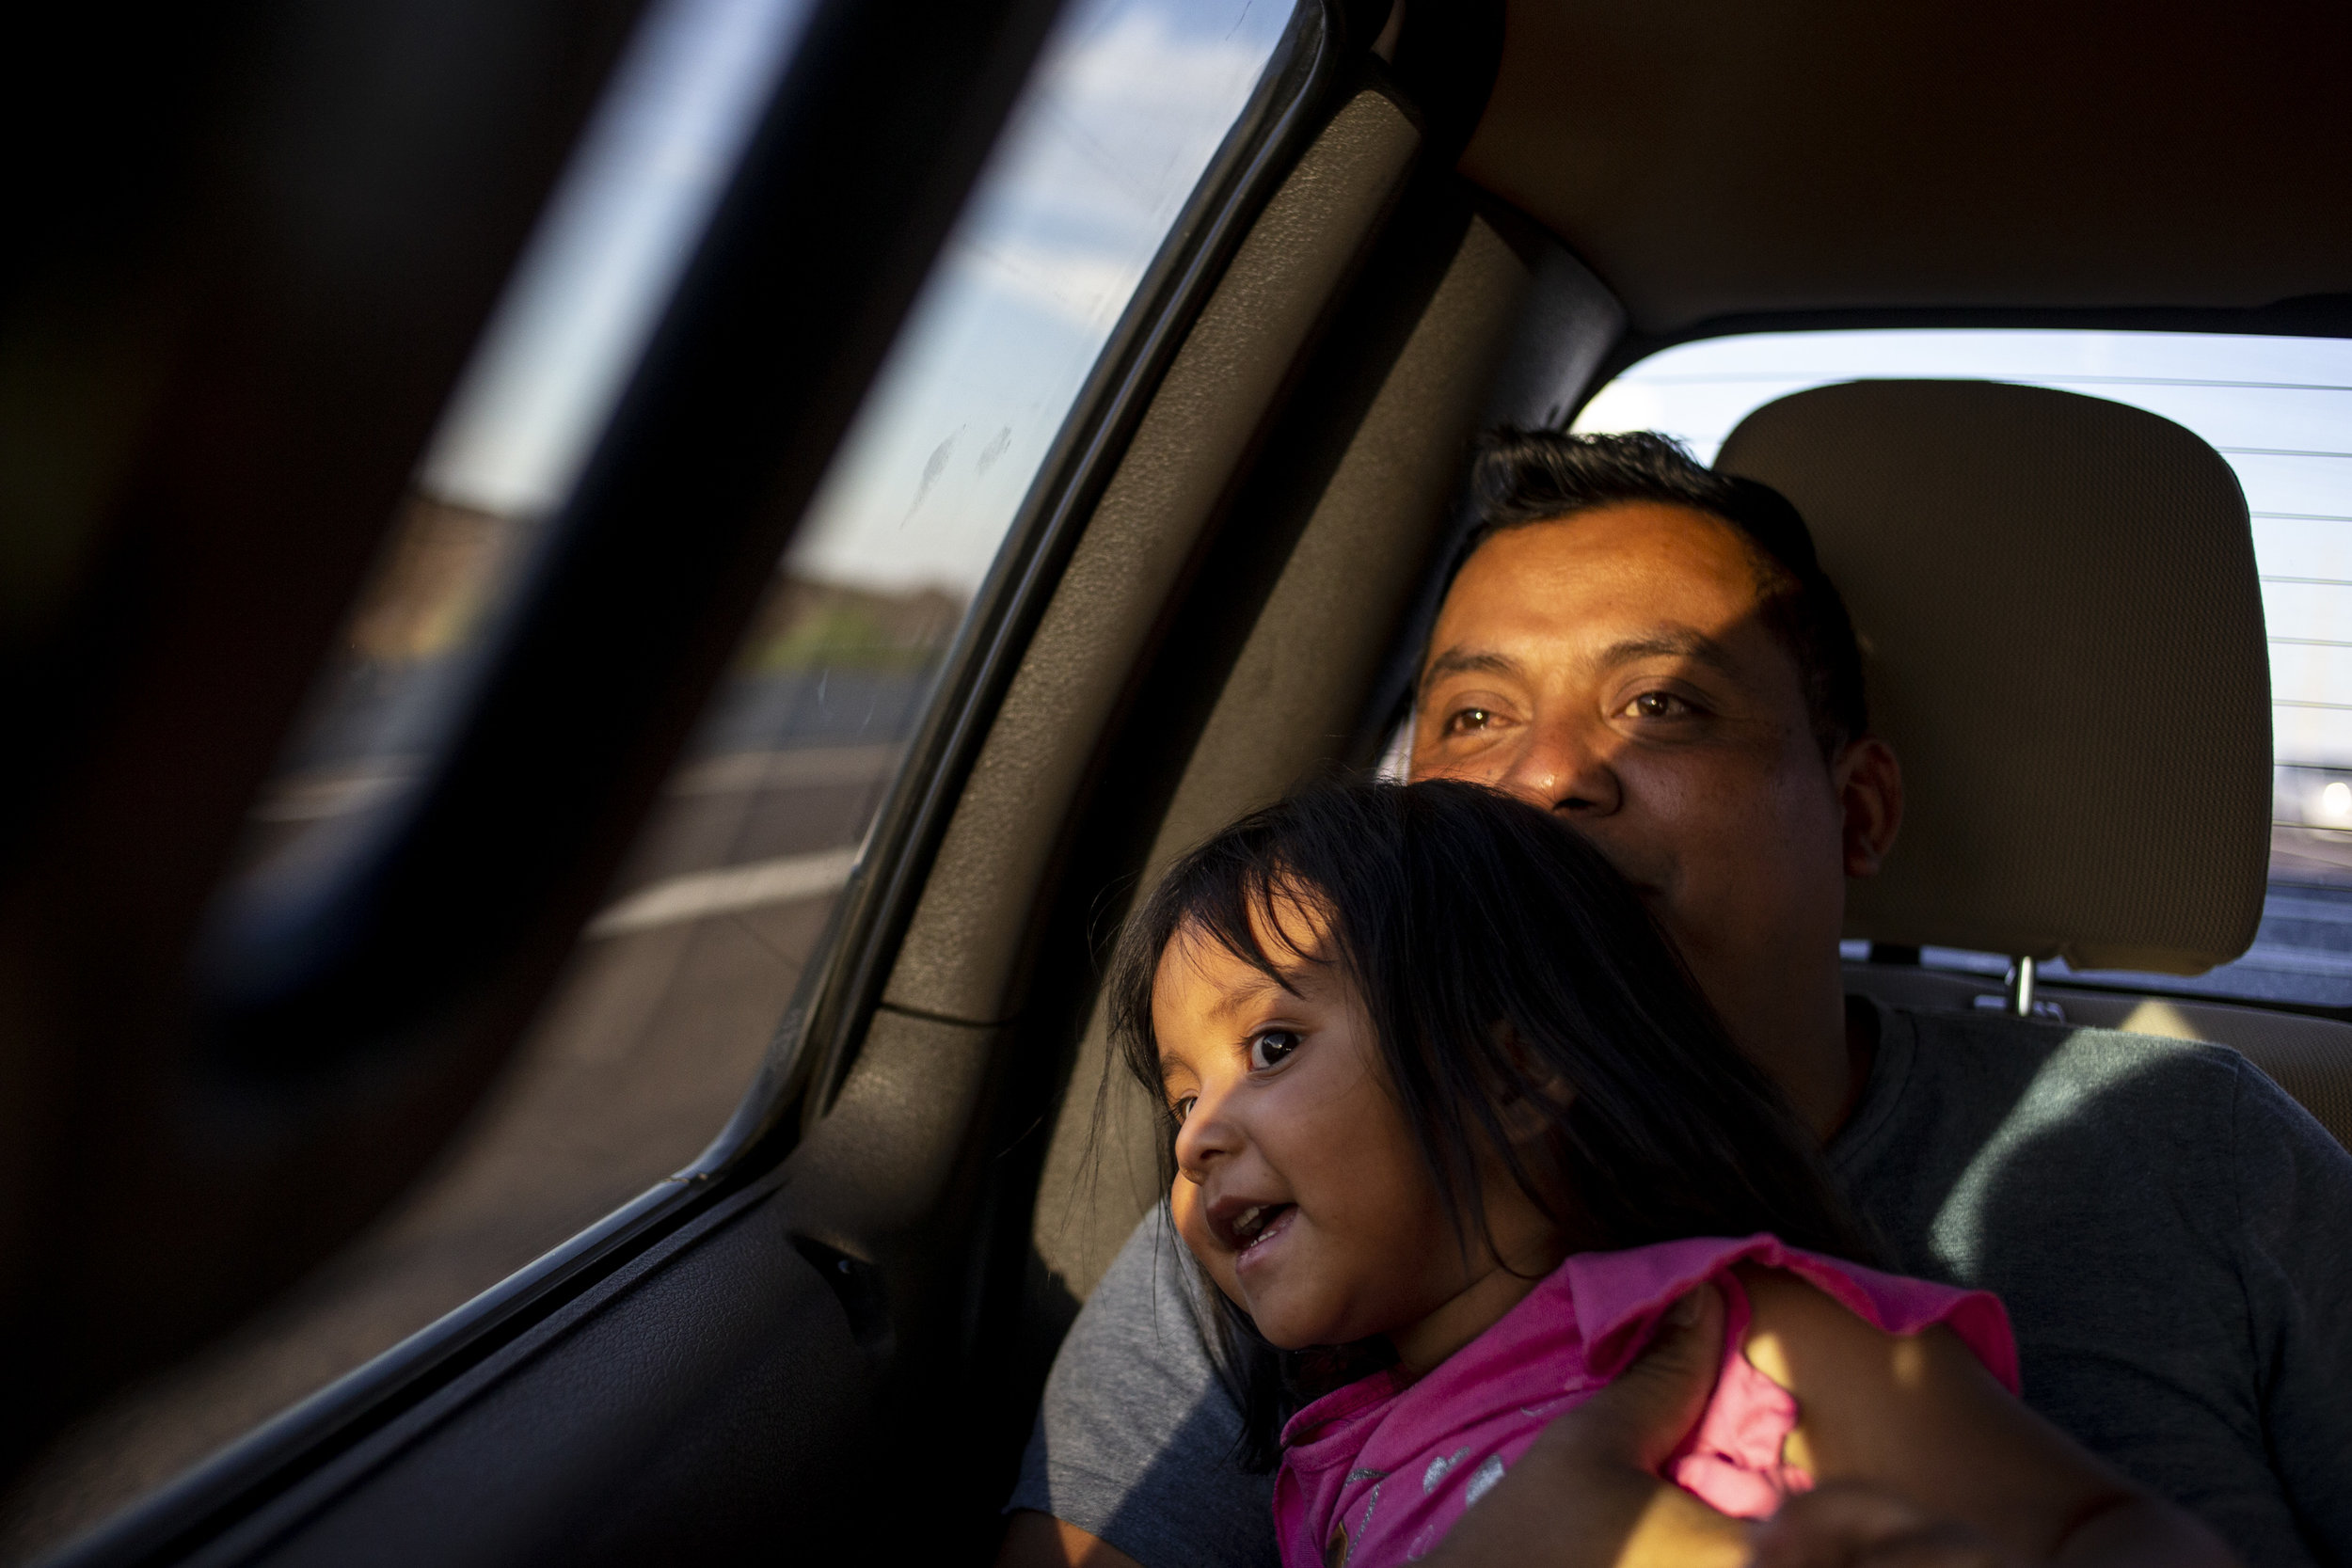 Jaime Escalante Galvez, 35, looks out the window with his daughter, Adriana Escalante Gonzalez, 2, on the way to Sky Harbor International Airport in Phoenix. Escalante Galvez migrated from Guatemala with his wife, Leydi Gonzalez Gonzalez, 29, and Adriana. They live in New Jersey and are applying for asylum.